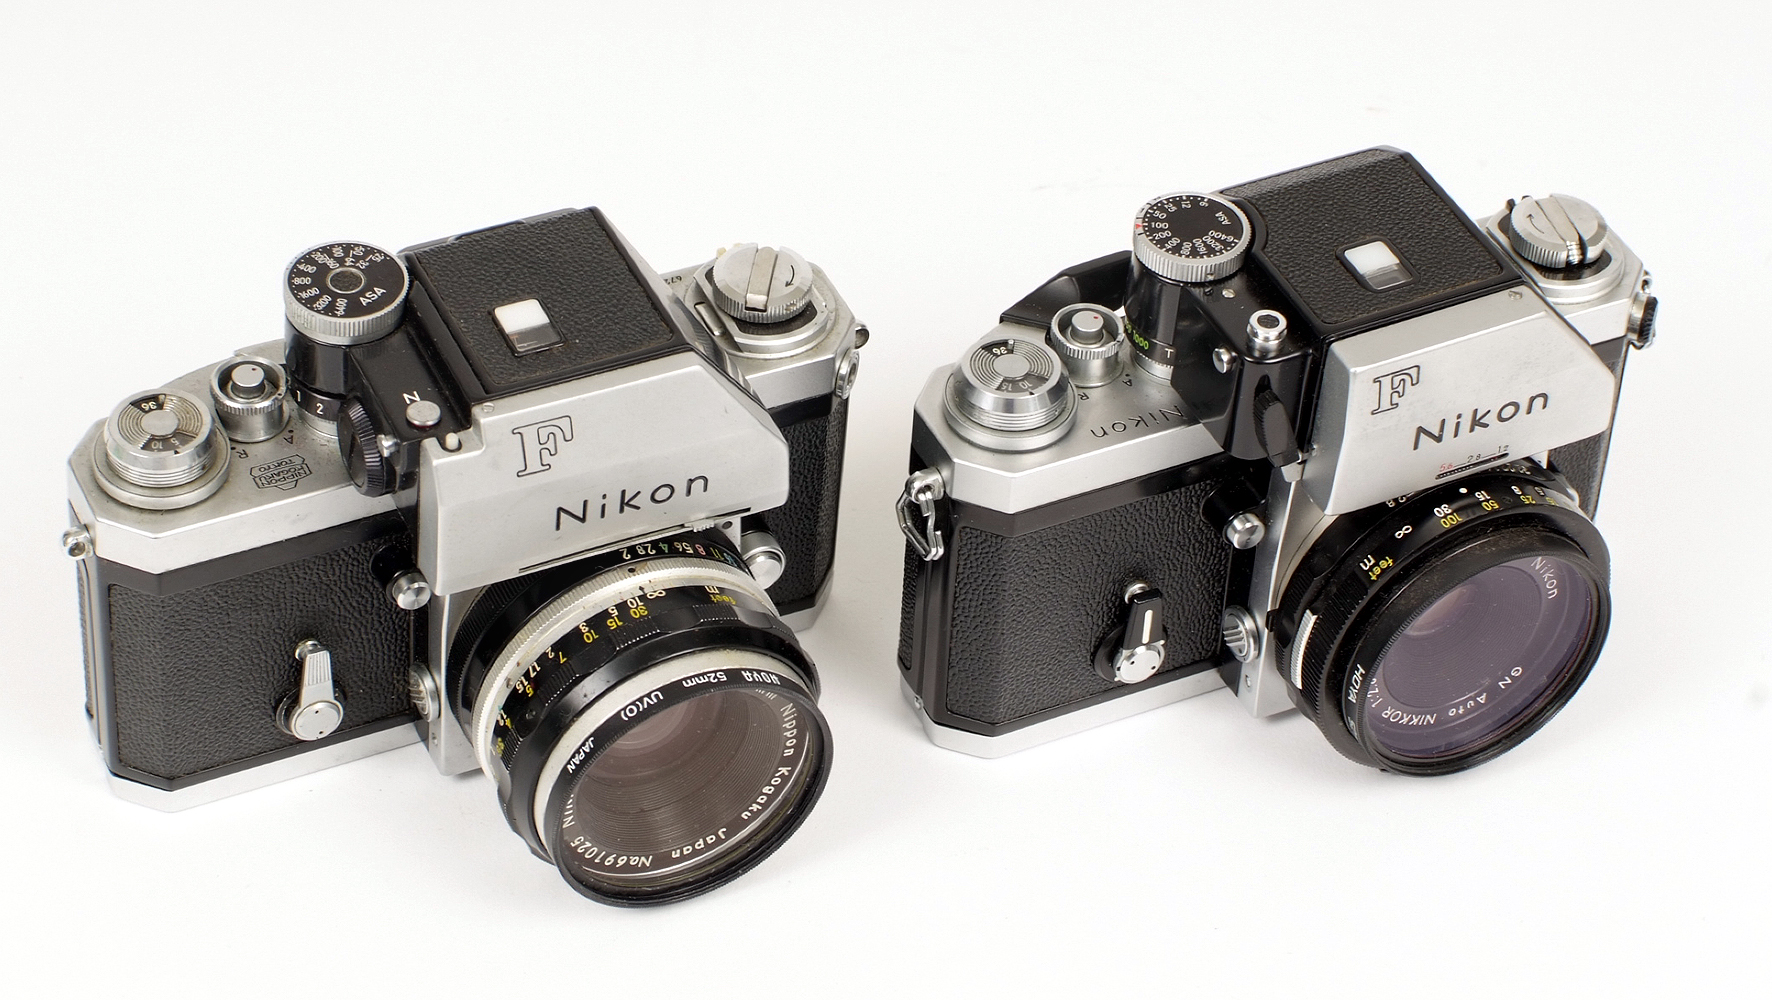 Lot 16 - Two Nikon F Cameras. #7382899 with Photomic head and uncommon G (Guide Number) Nikkor 45mm f2.